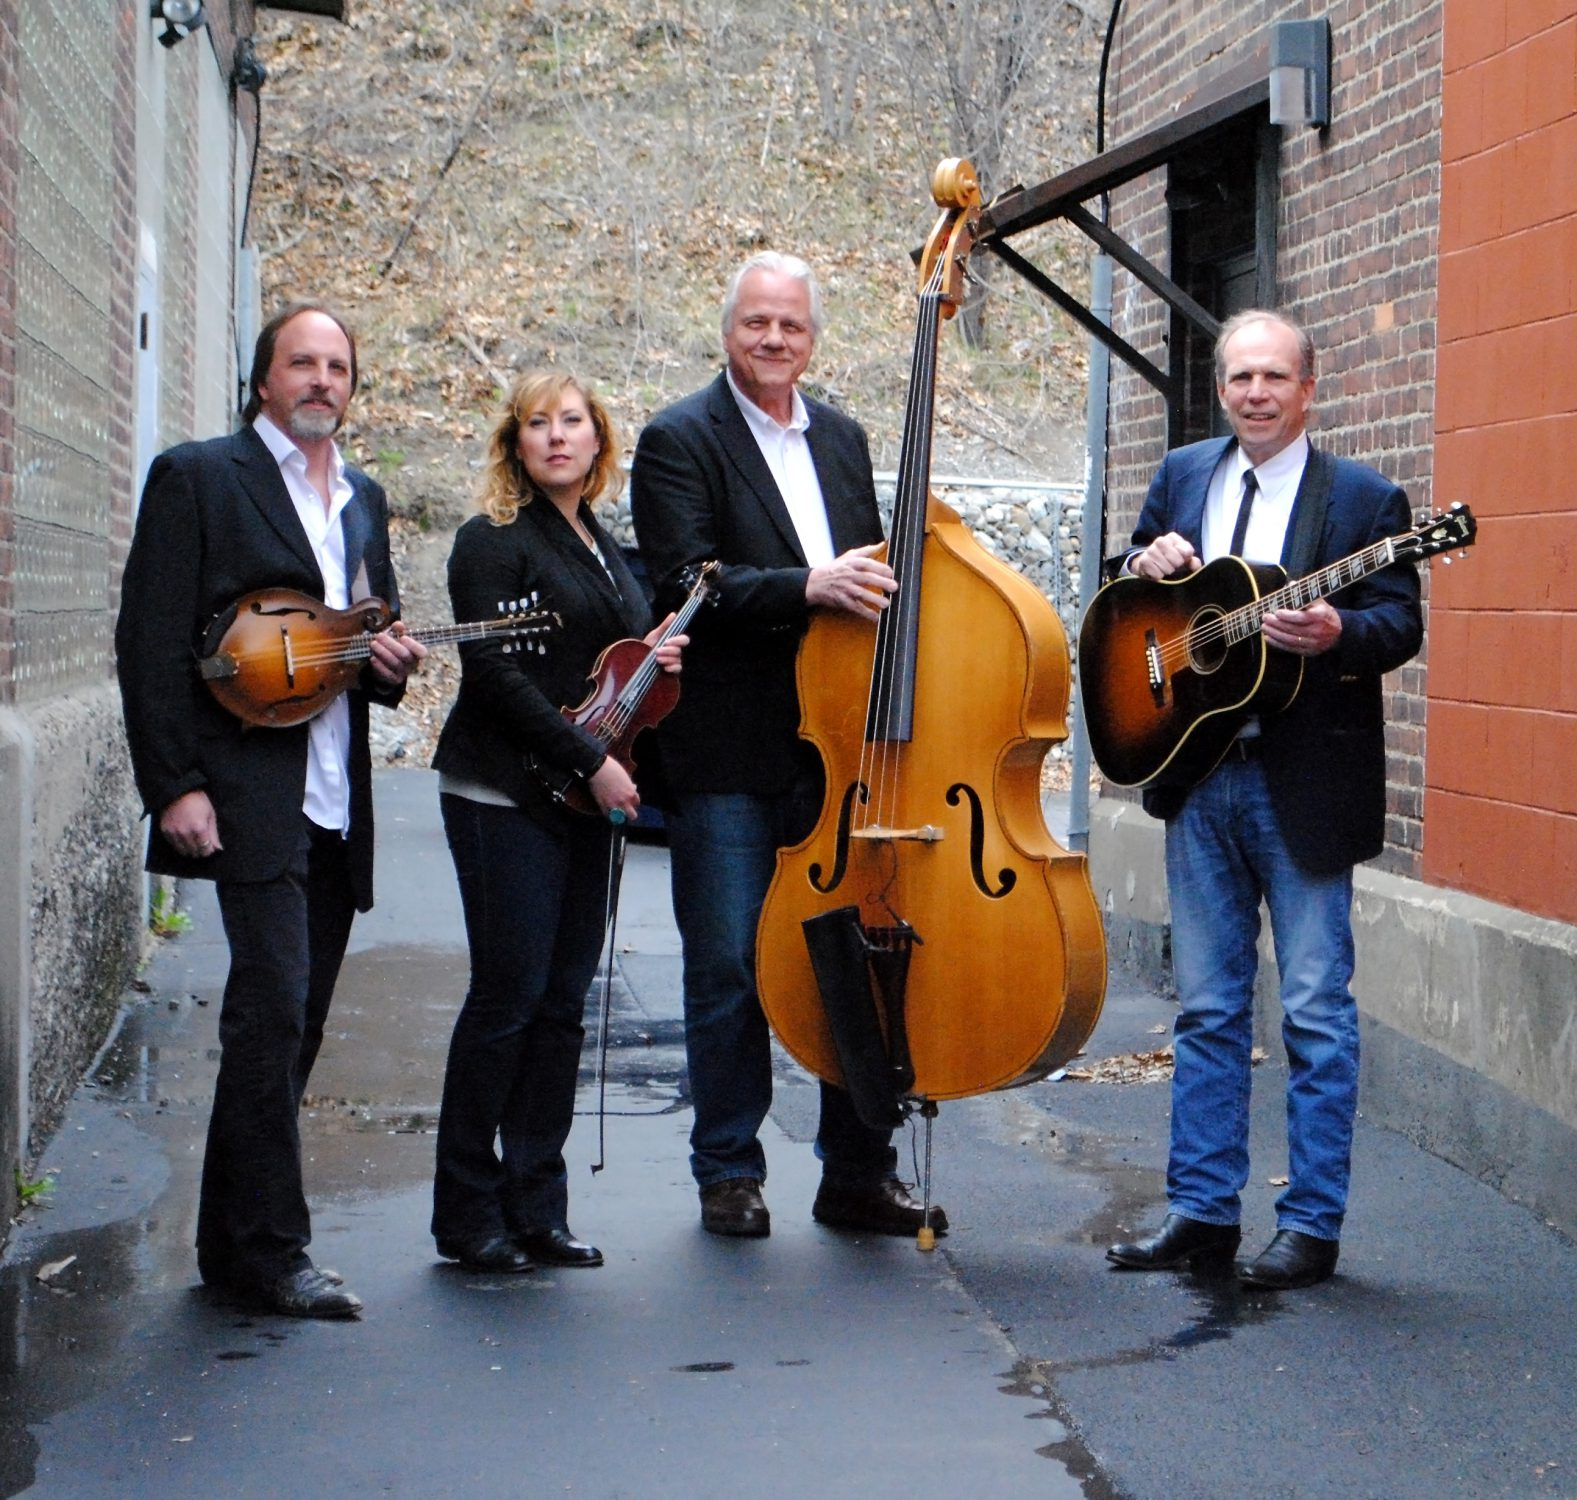 JIM GAUDET AND THE RAILROAD BOYS: Open for Take-Out Virtual Concert Series